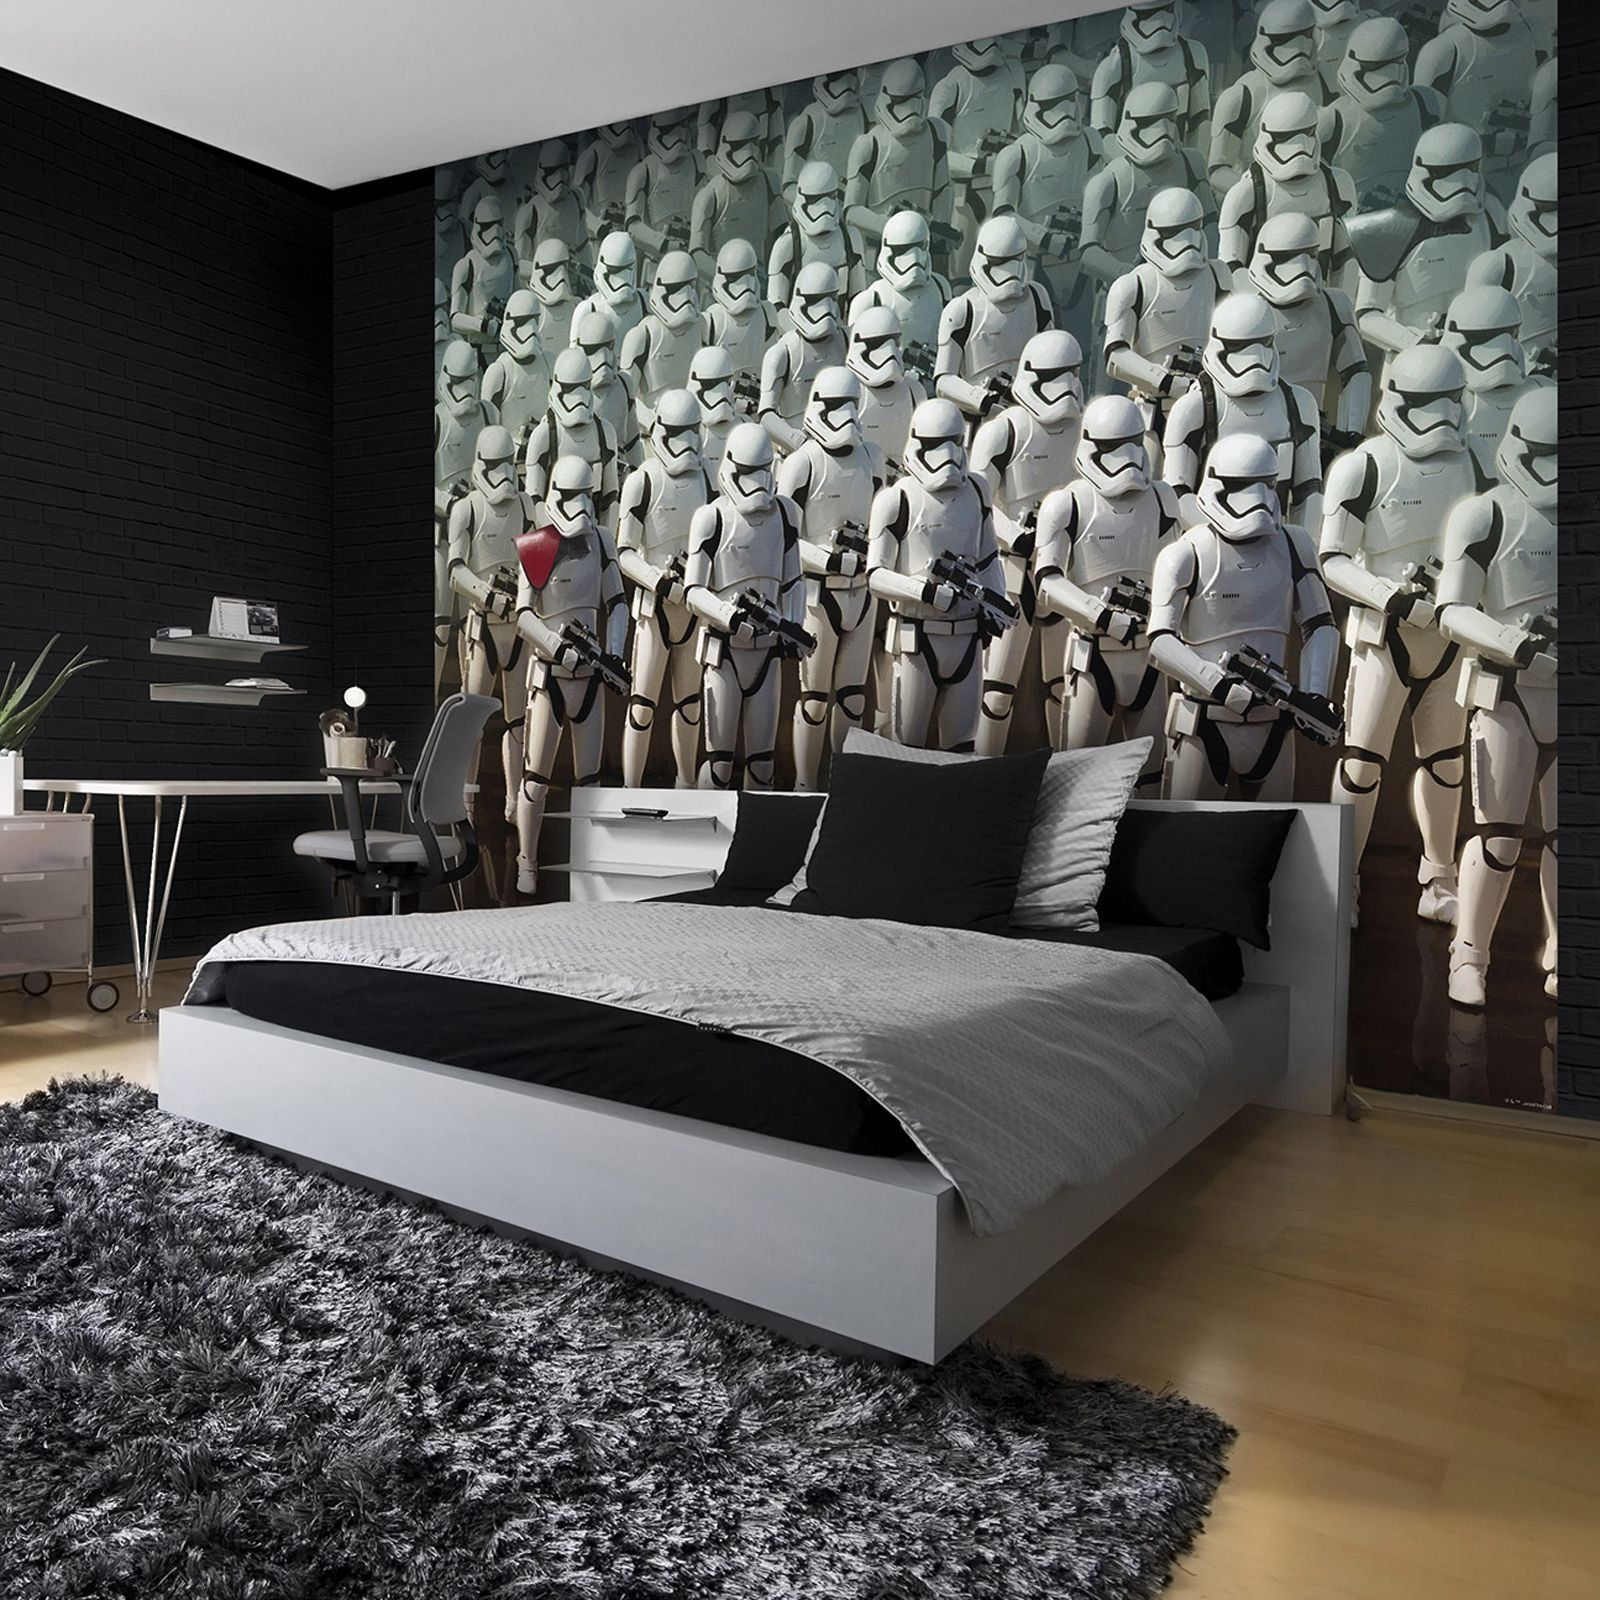 Star Wars Stormtrooper Wall Mural  dream bedroom   Dane